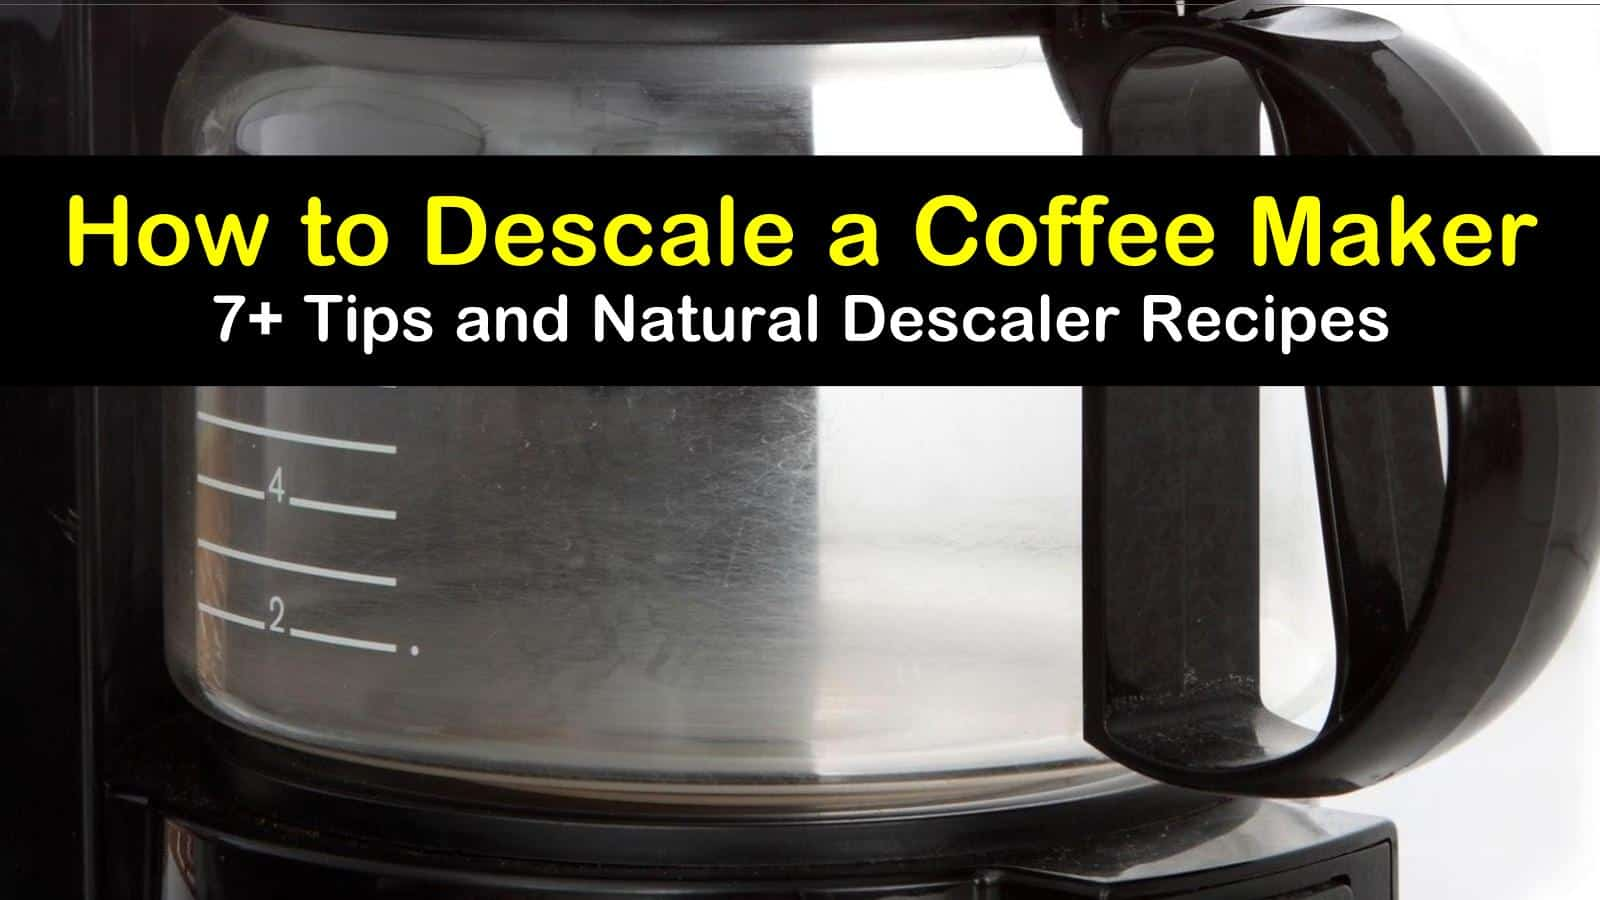 how to descale a coffee maker titleimg1